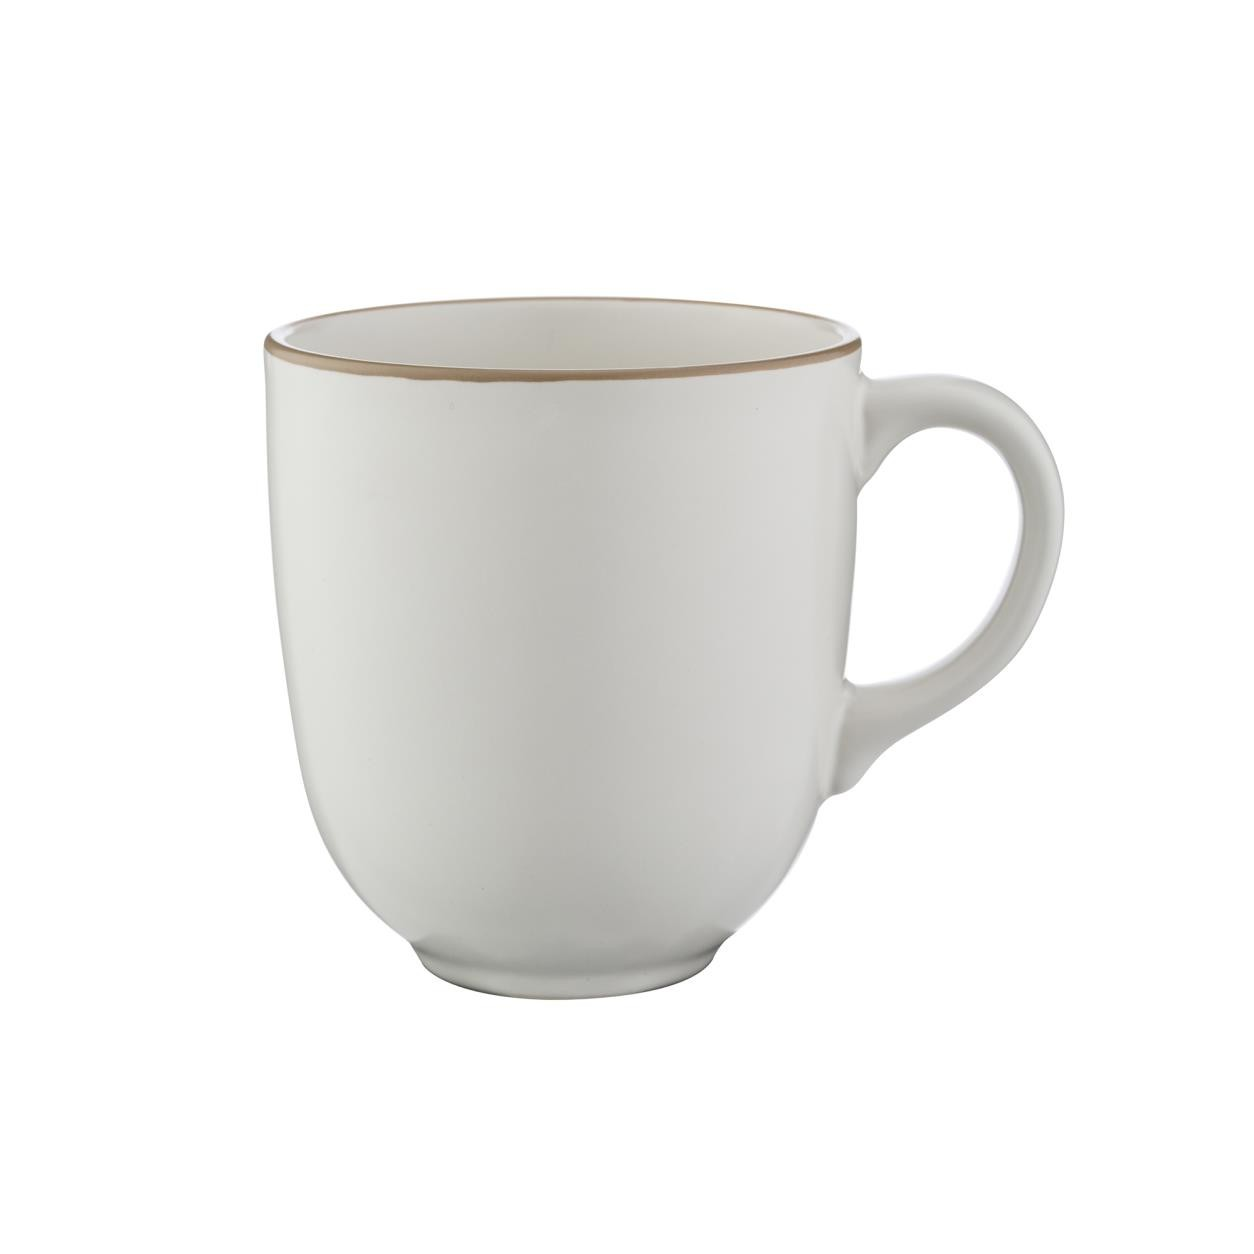 CLASSIC COLLECTION CREAM MUG